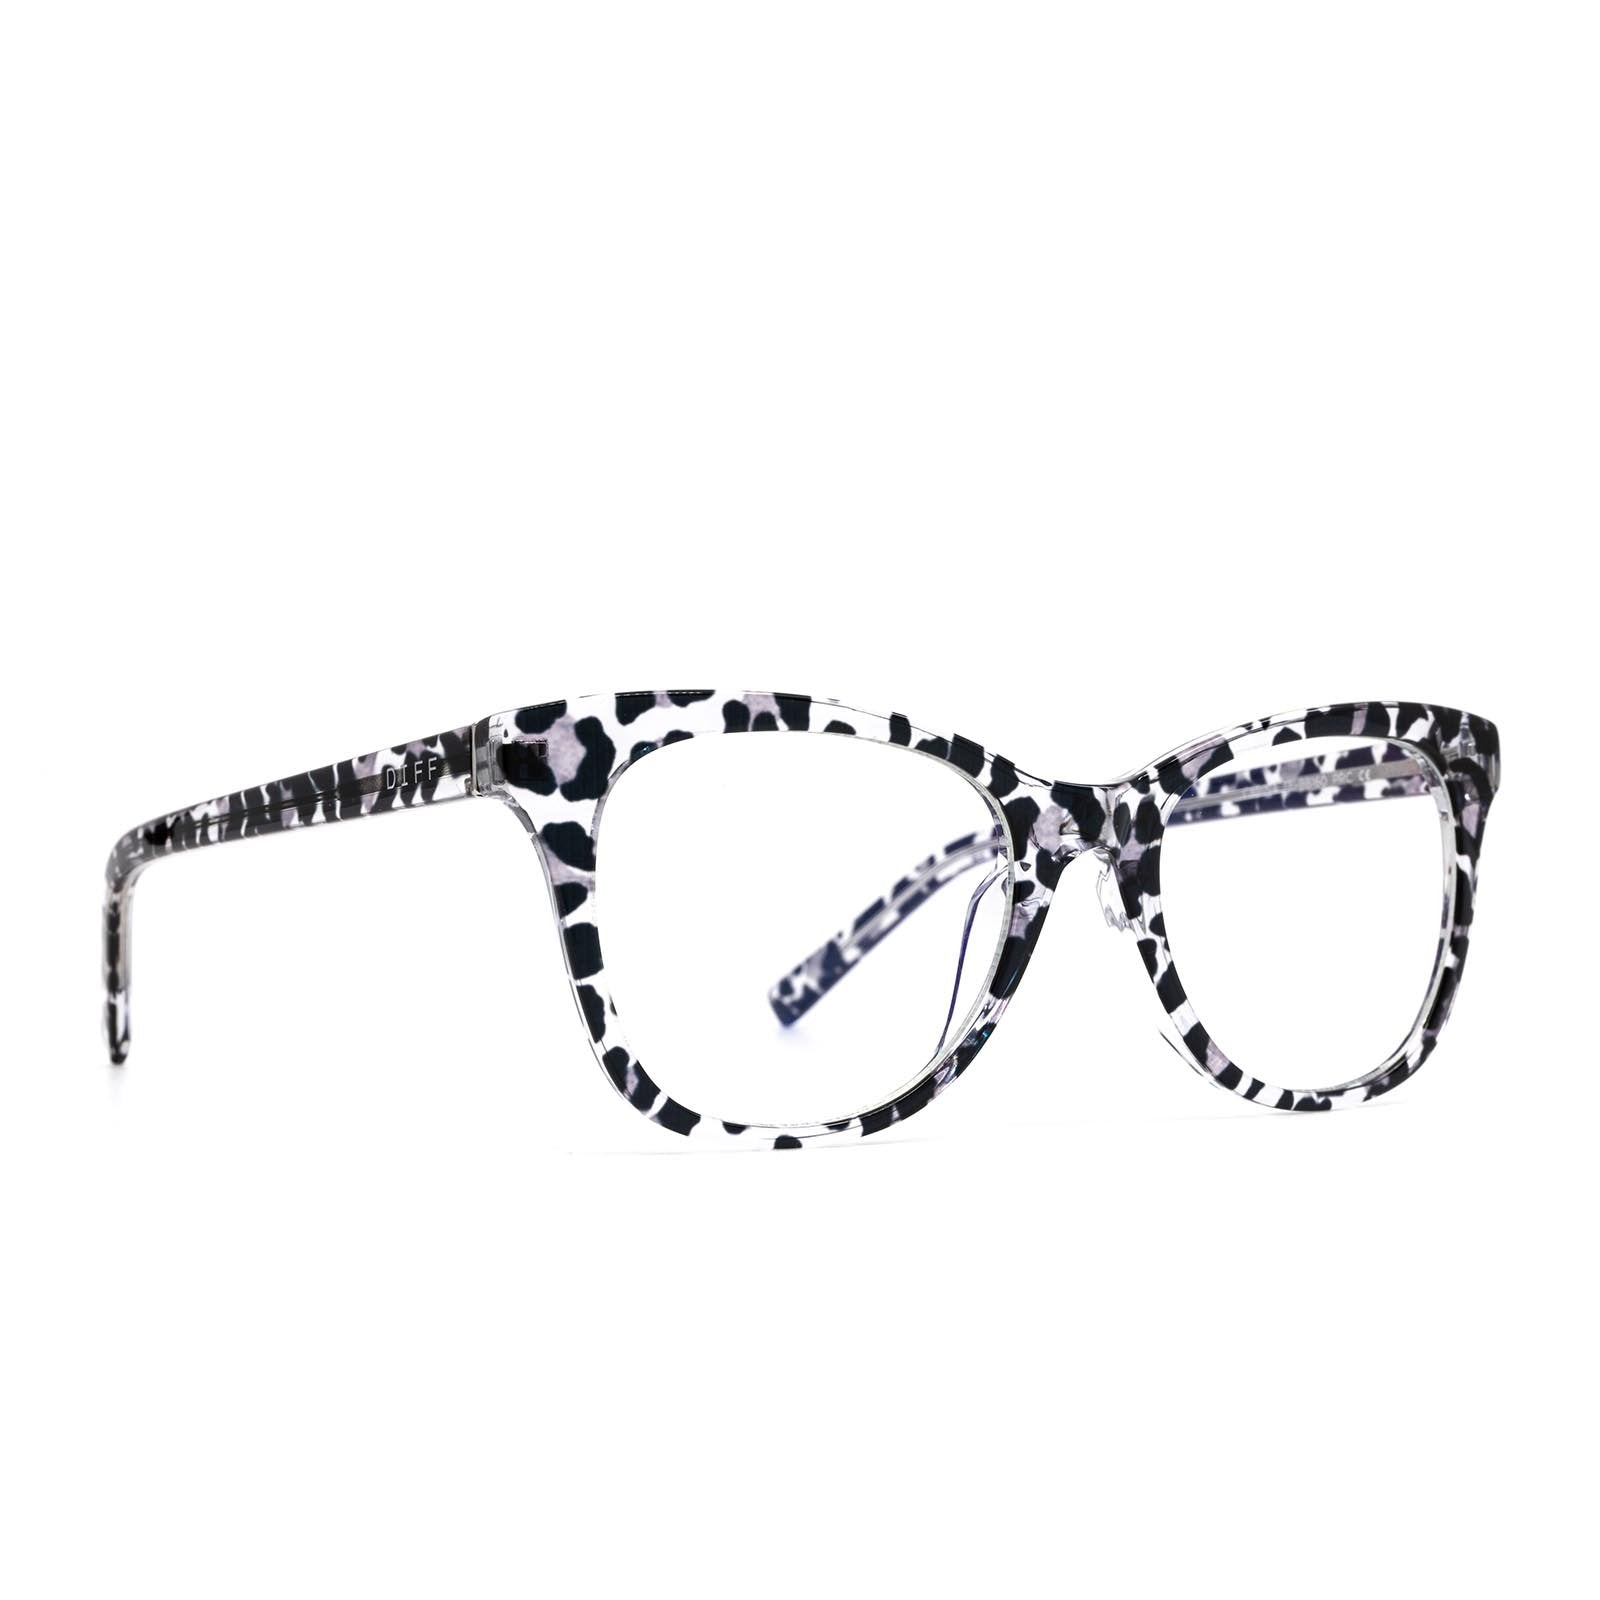 Carina prescription eyeglasses with clear leopard frames angle view